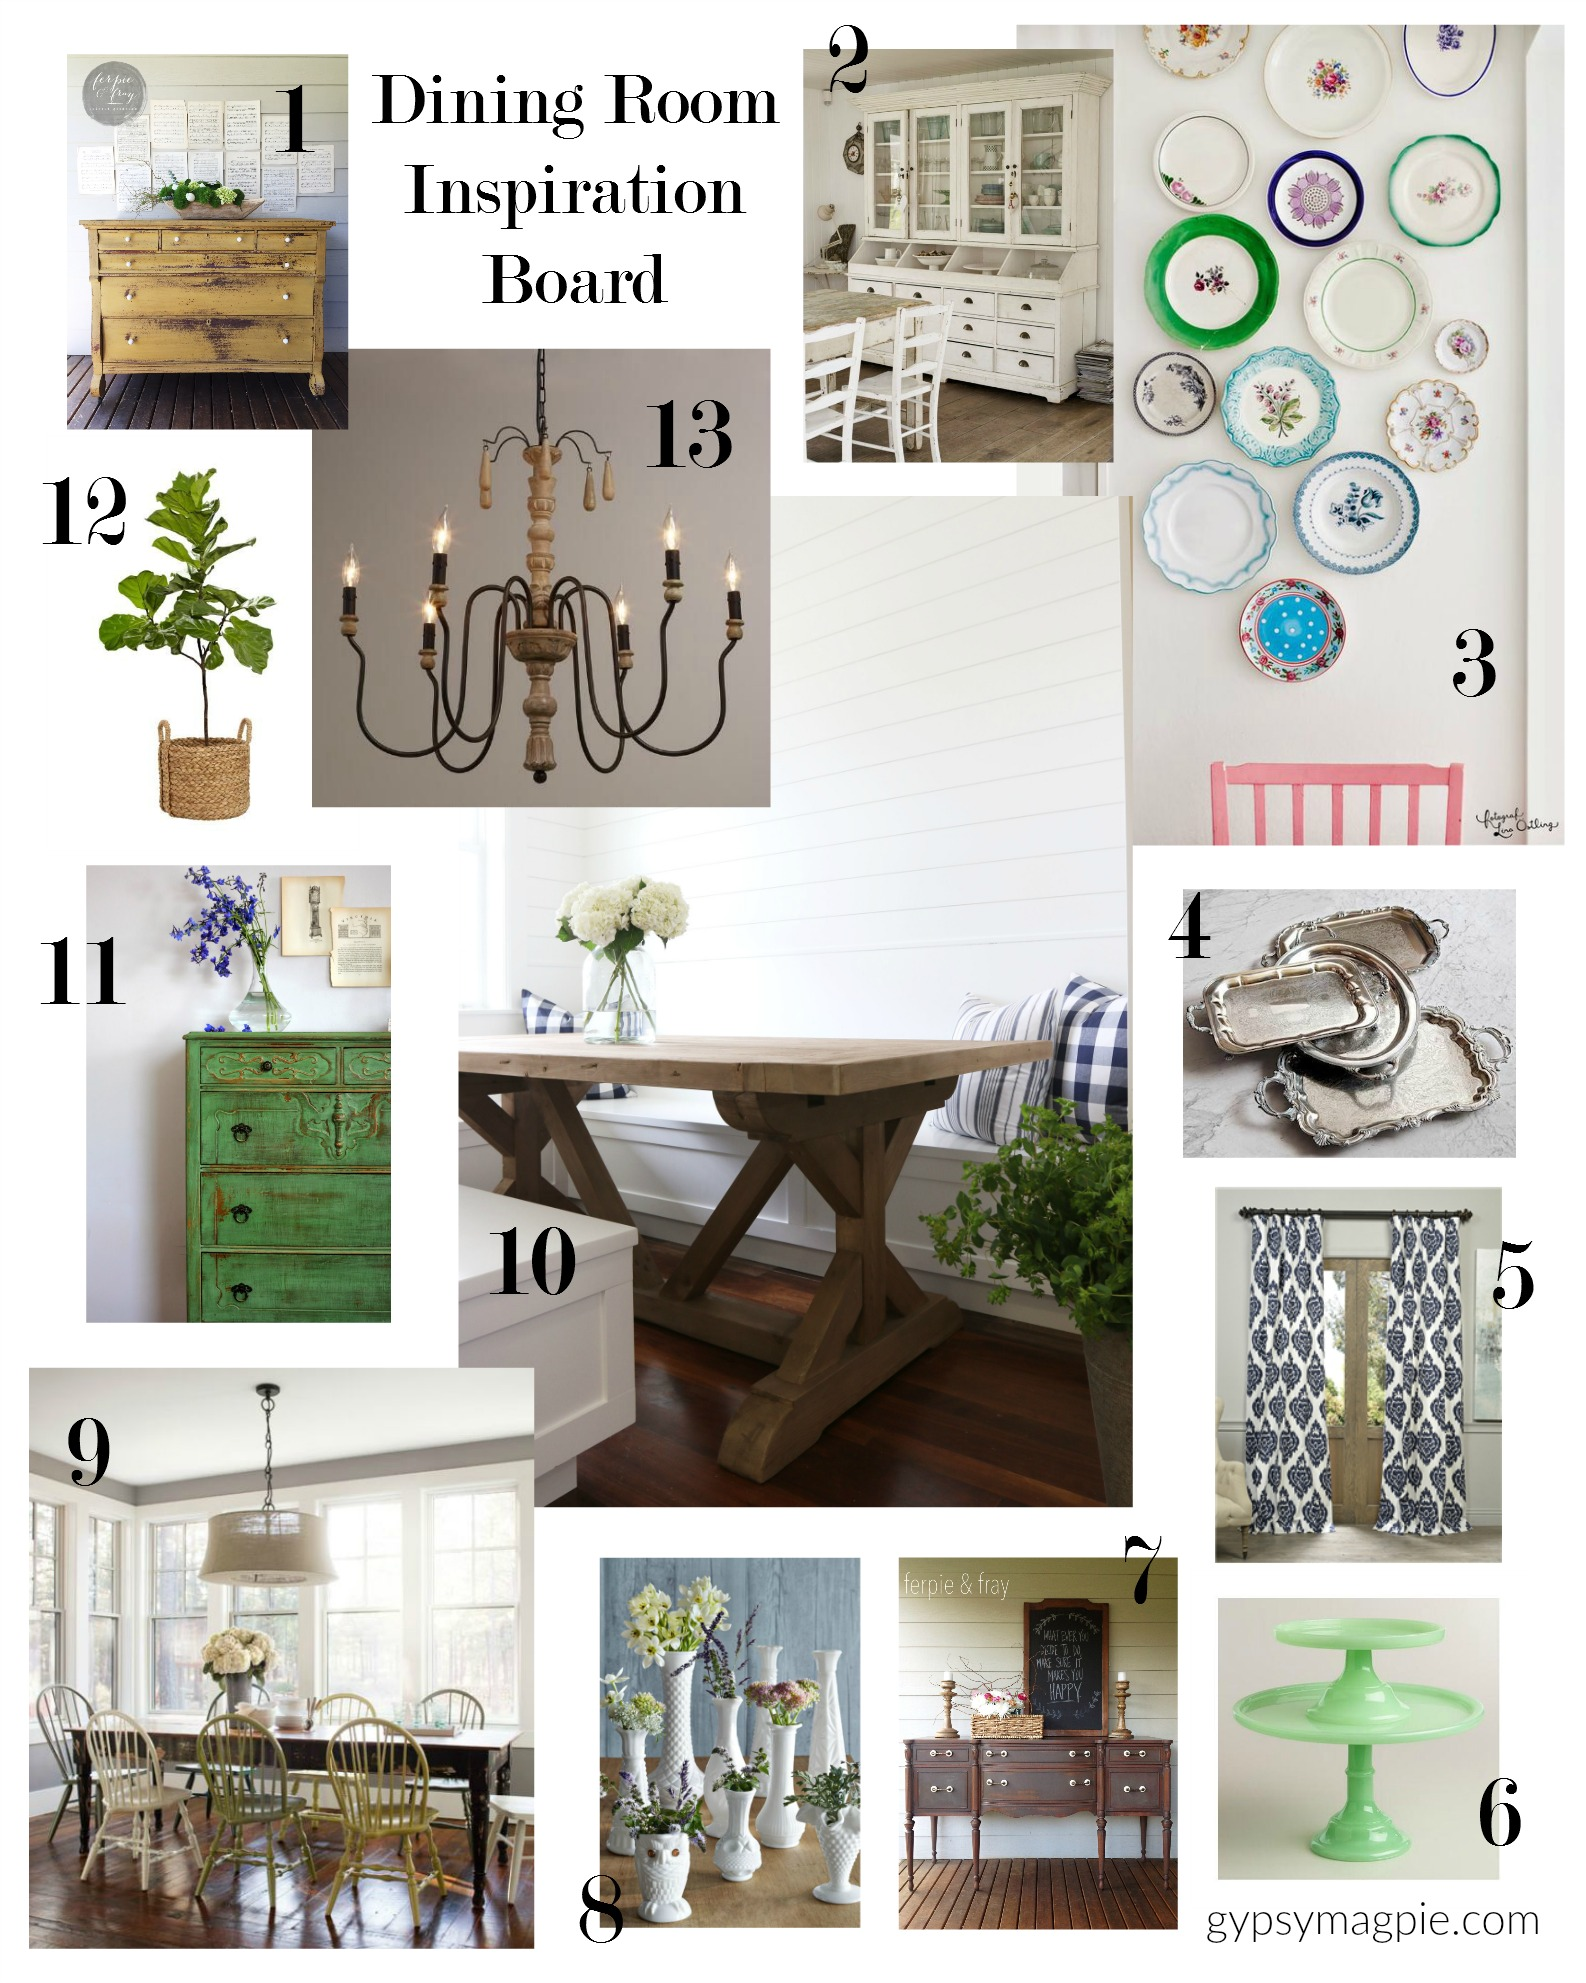 I needed a way to gather my inspiration for my dining room project together in one place, so I created this little inspiration board to keep me focused! I love inpiration boards! | Gypsy Magpie